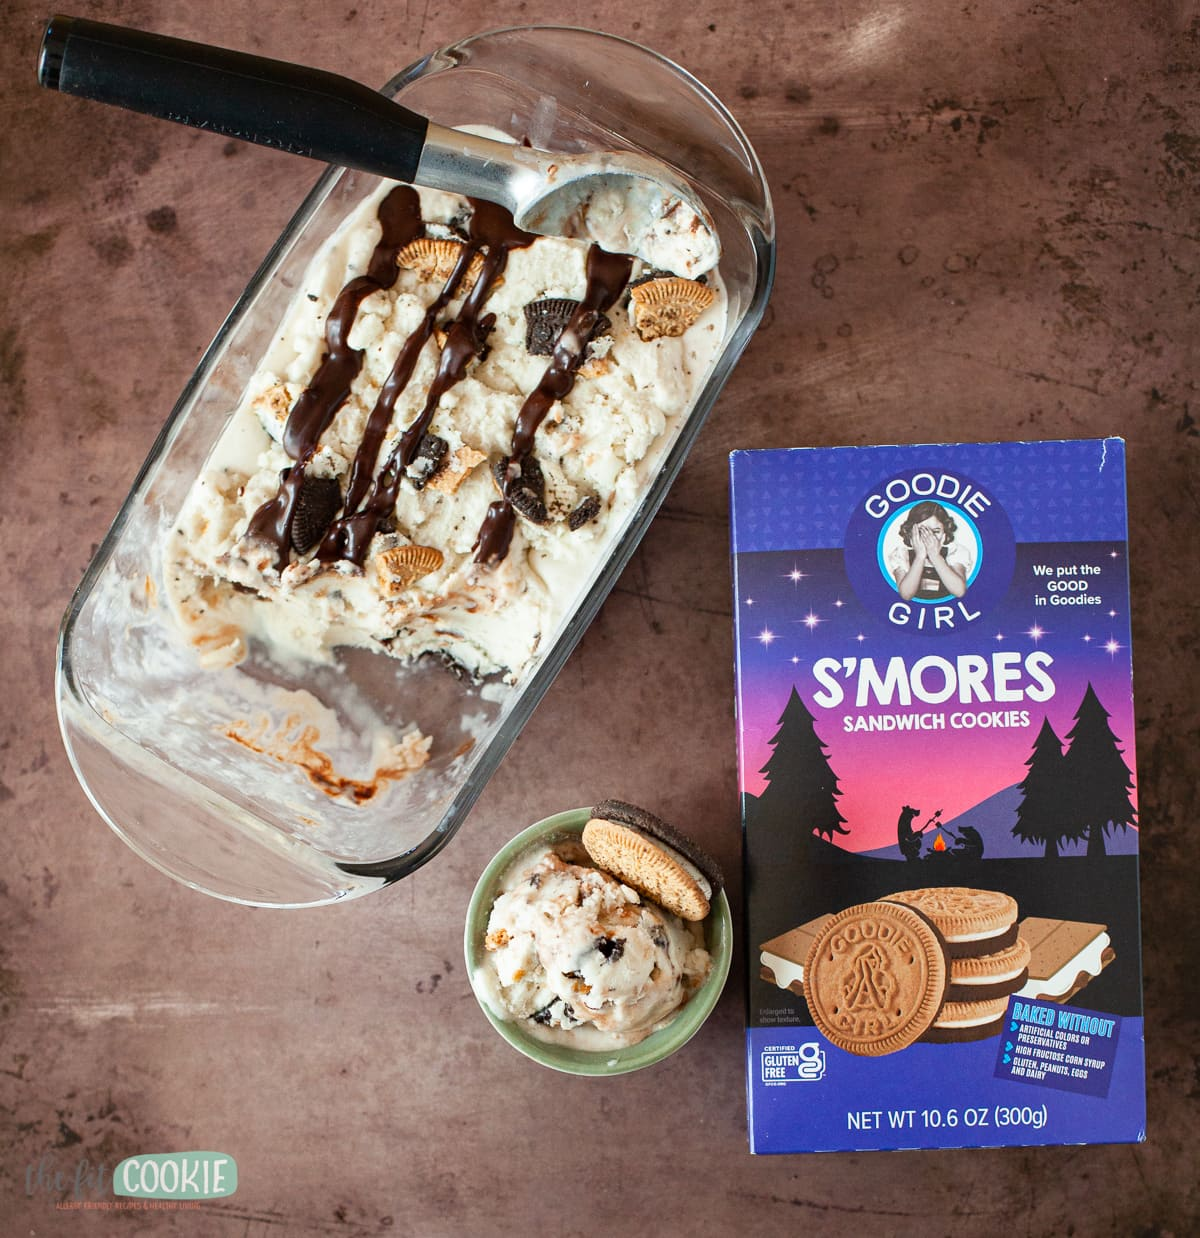 ice cream next to package of gluten free s'mores sandwich cookies